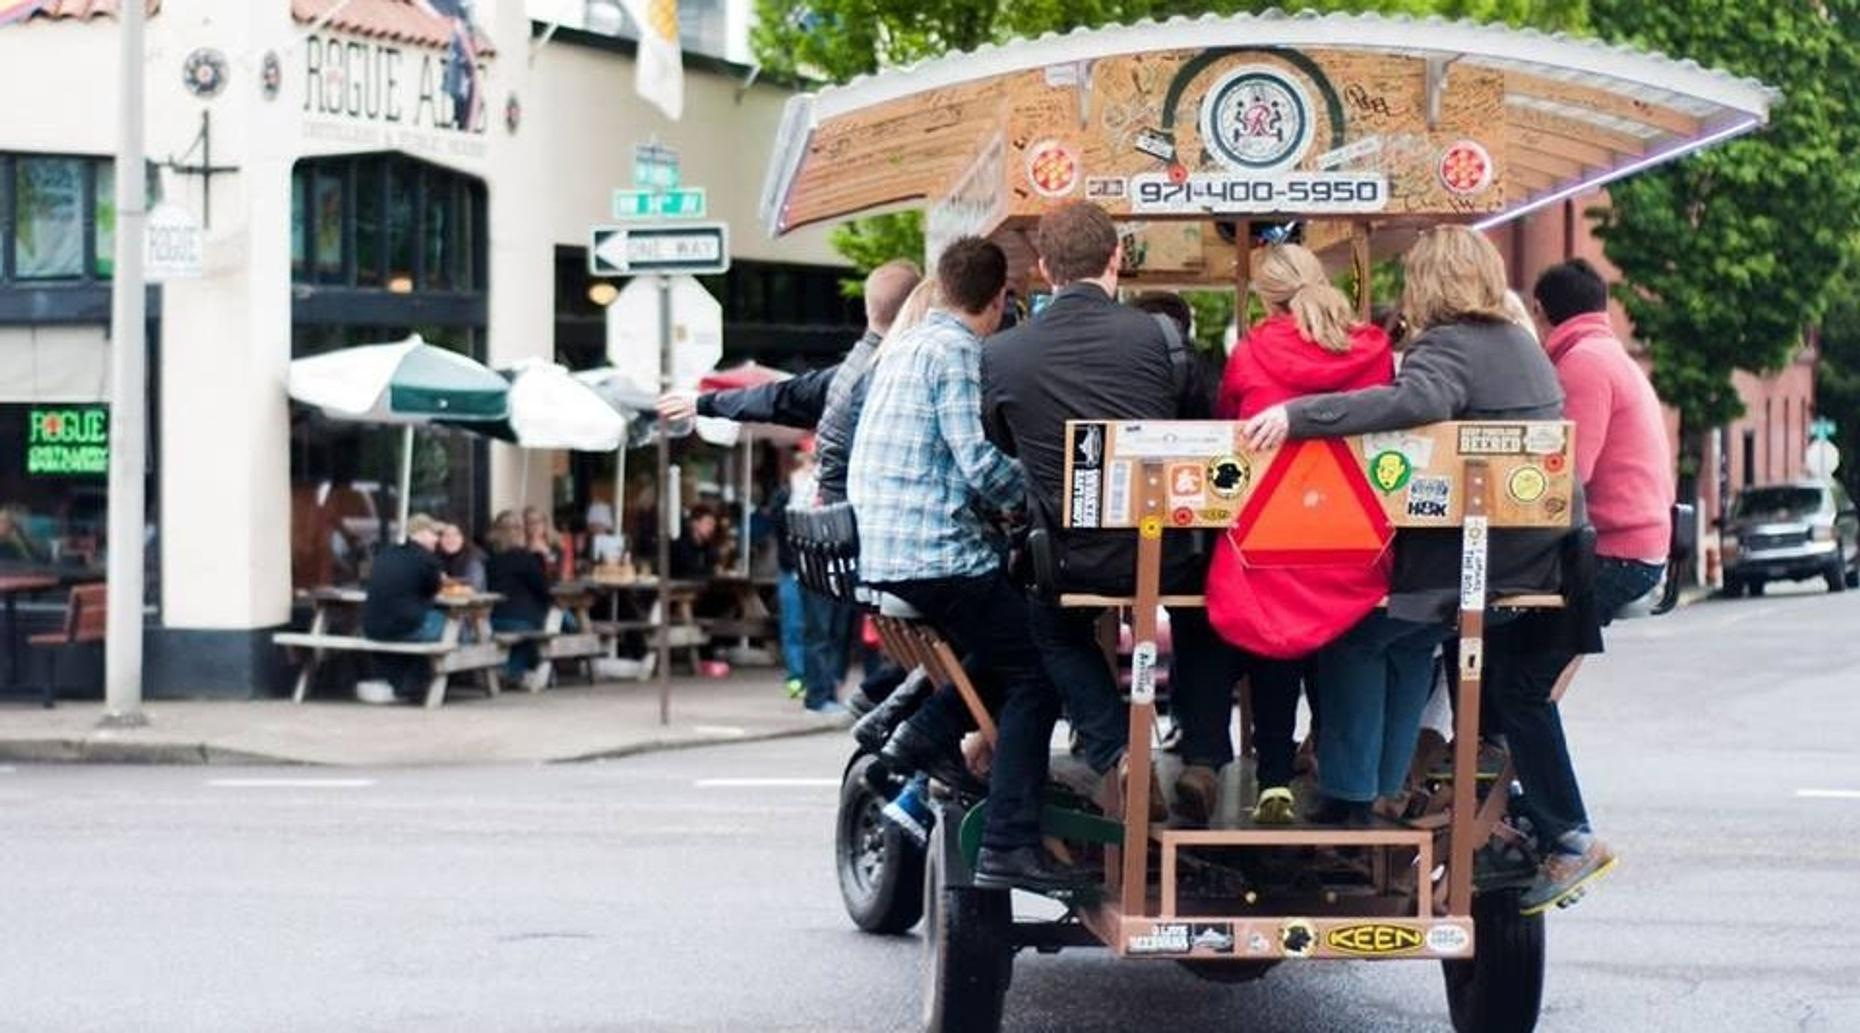 Pedal-Powered Beer & Cider Tour in East Portland